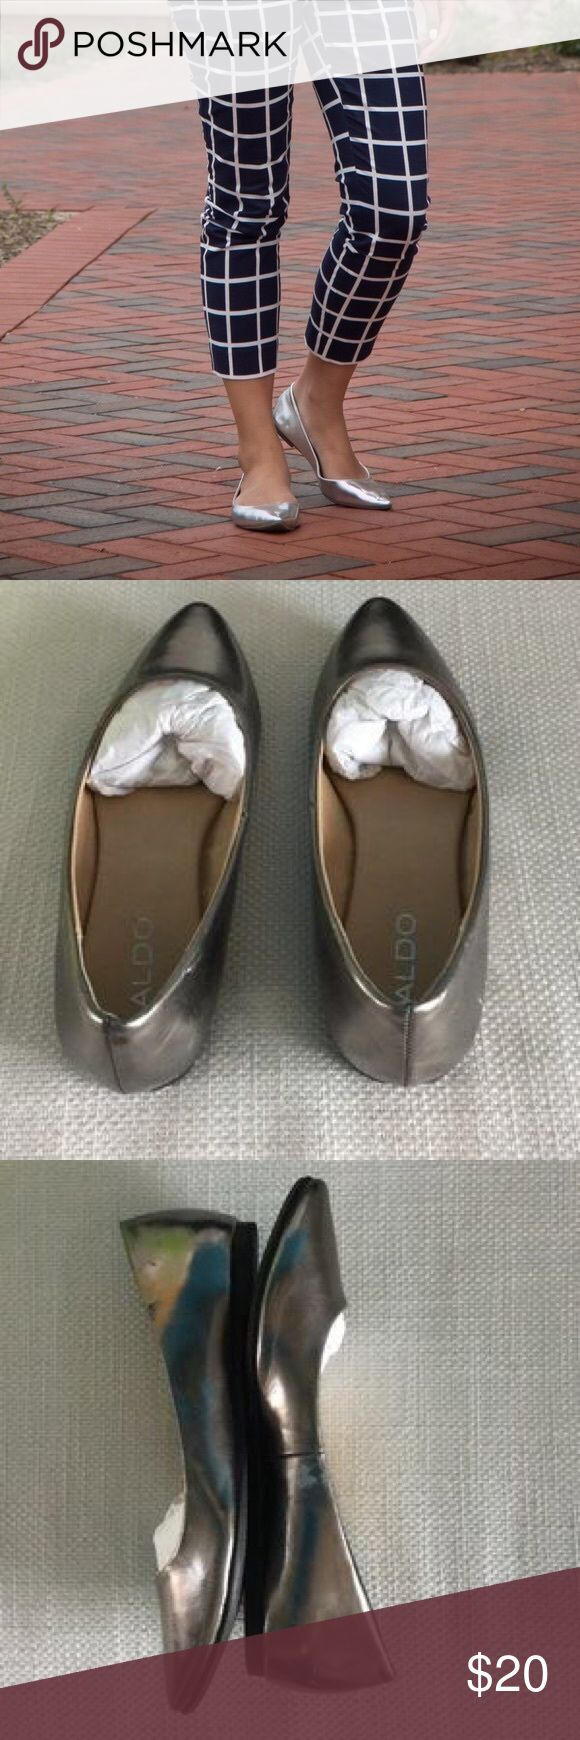 Aldo Metallic Flats Flats in metallic grey. They are brand new, tried on but never worned out... but the material has slight imperfections. See last 2 pictures. Will come in a shoe box. Size: 36 Aldo Shoes Flats & Loafers